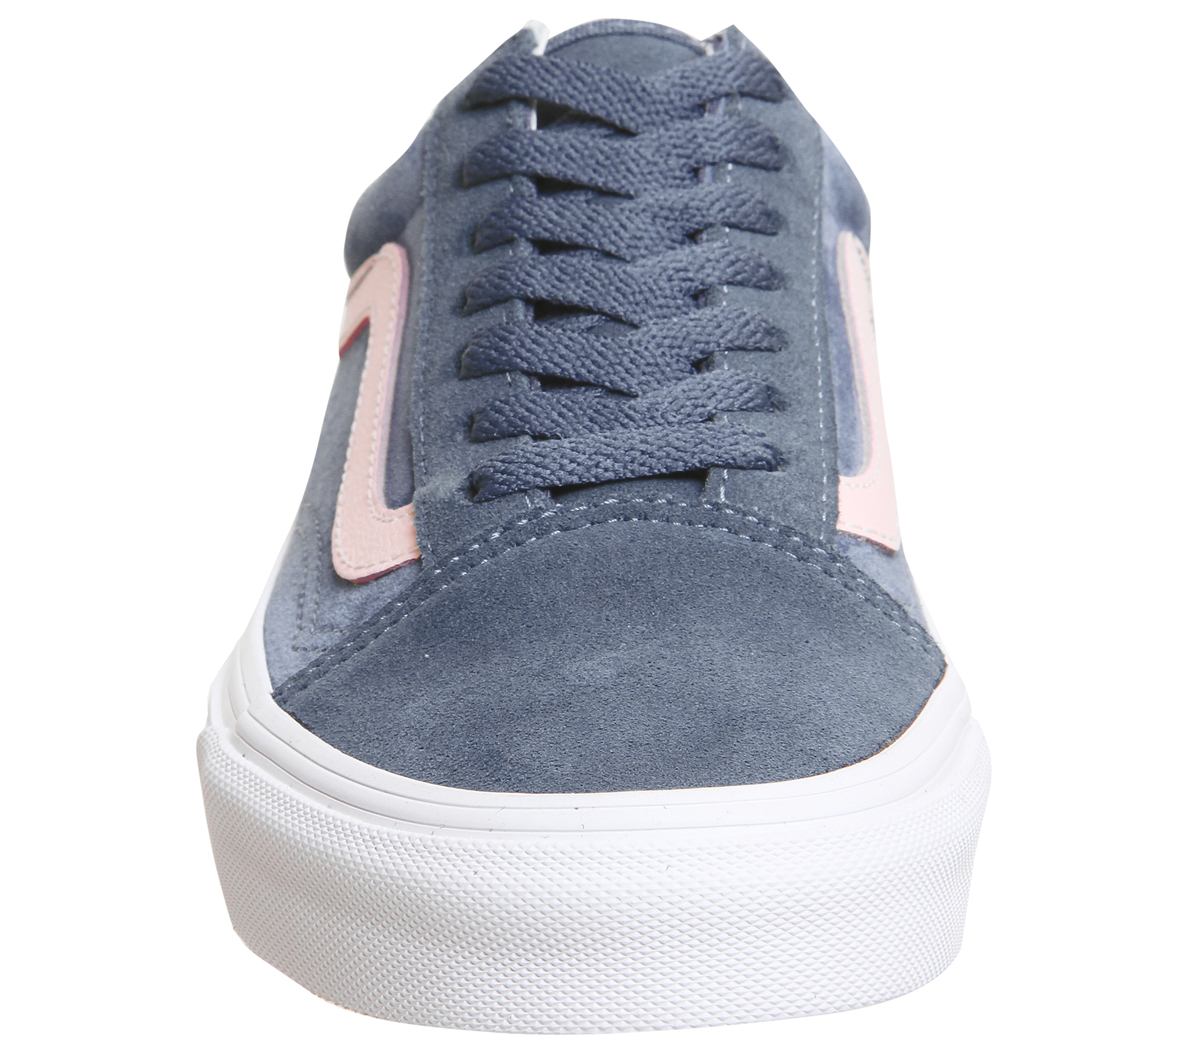 53df6e44d3 Sentinel Womens Vans Old Skool Trainers China Blue Silver Peony True  Exclusive Trainers S